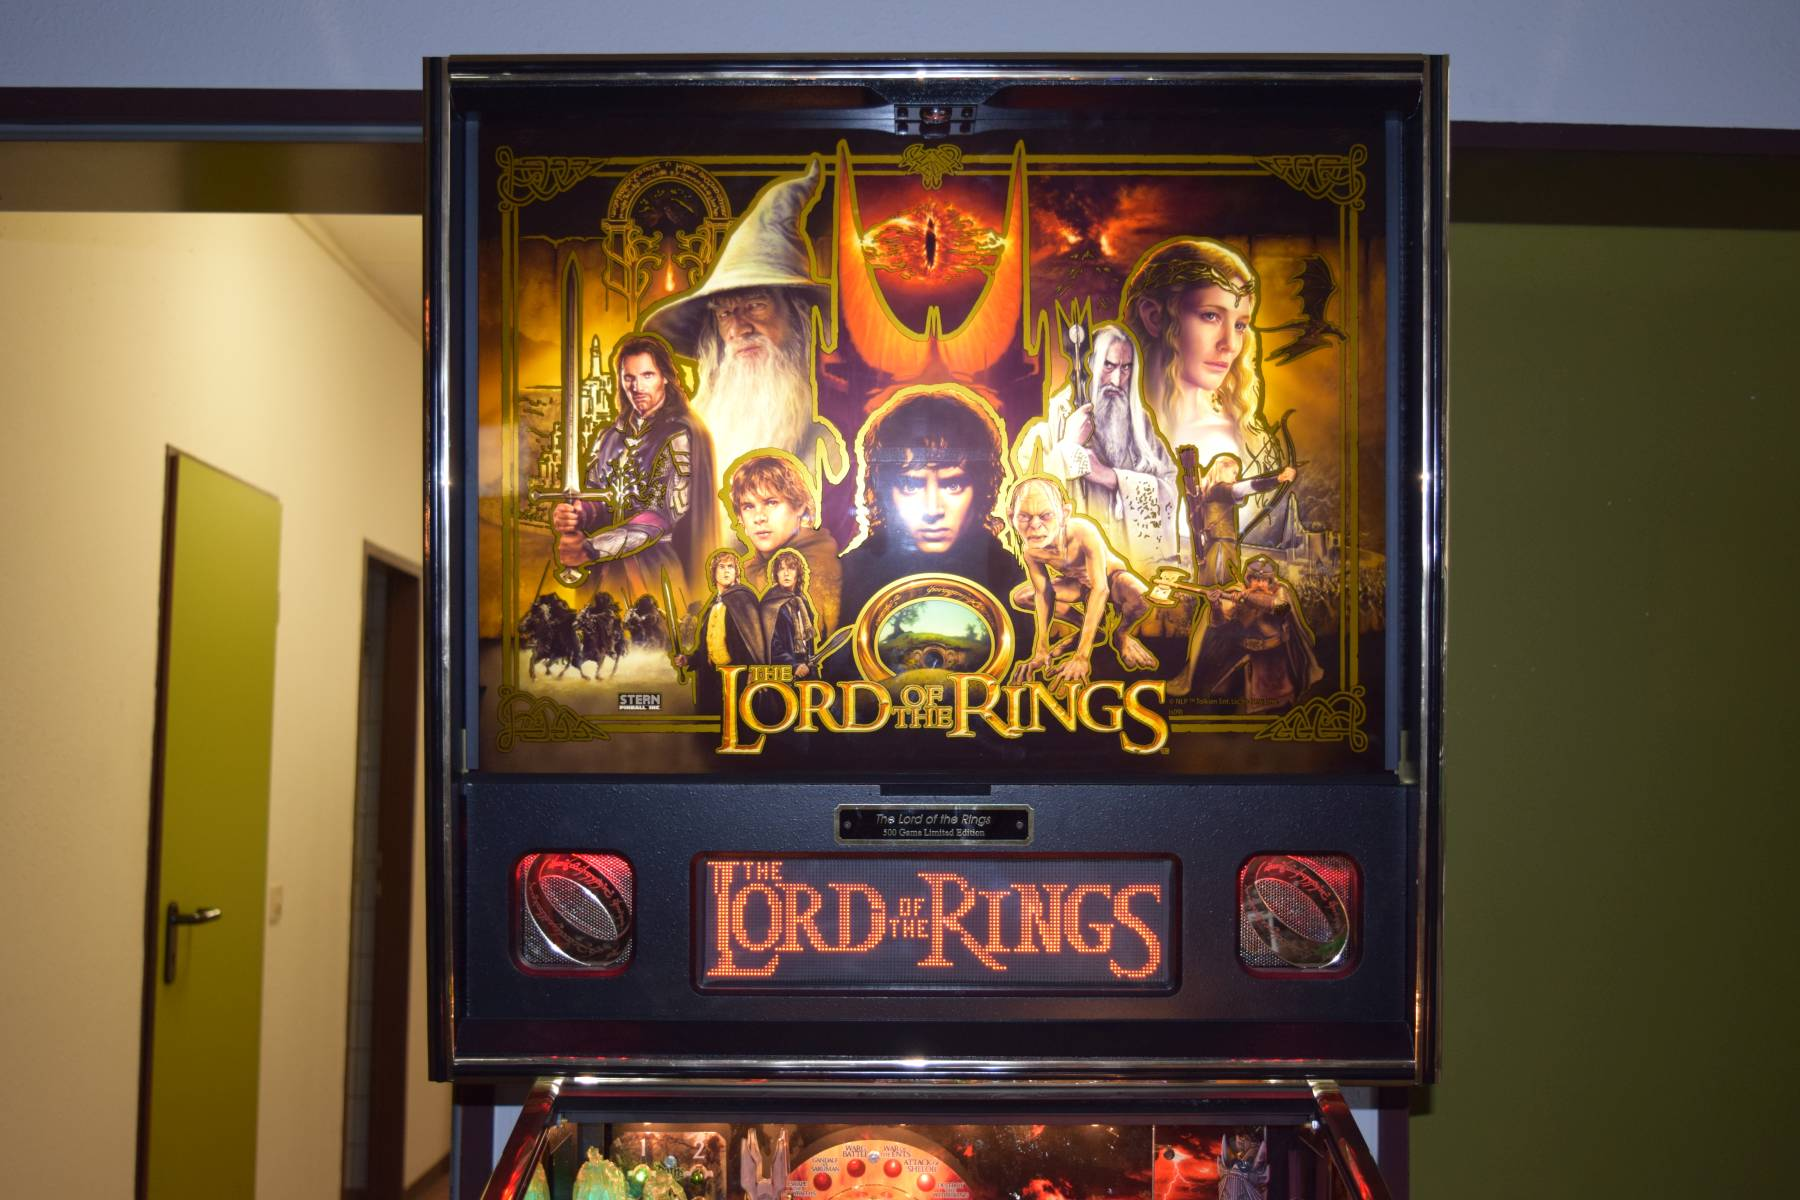 The-Lord-of-the-Rings01.jpg